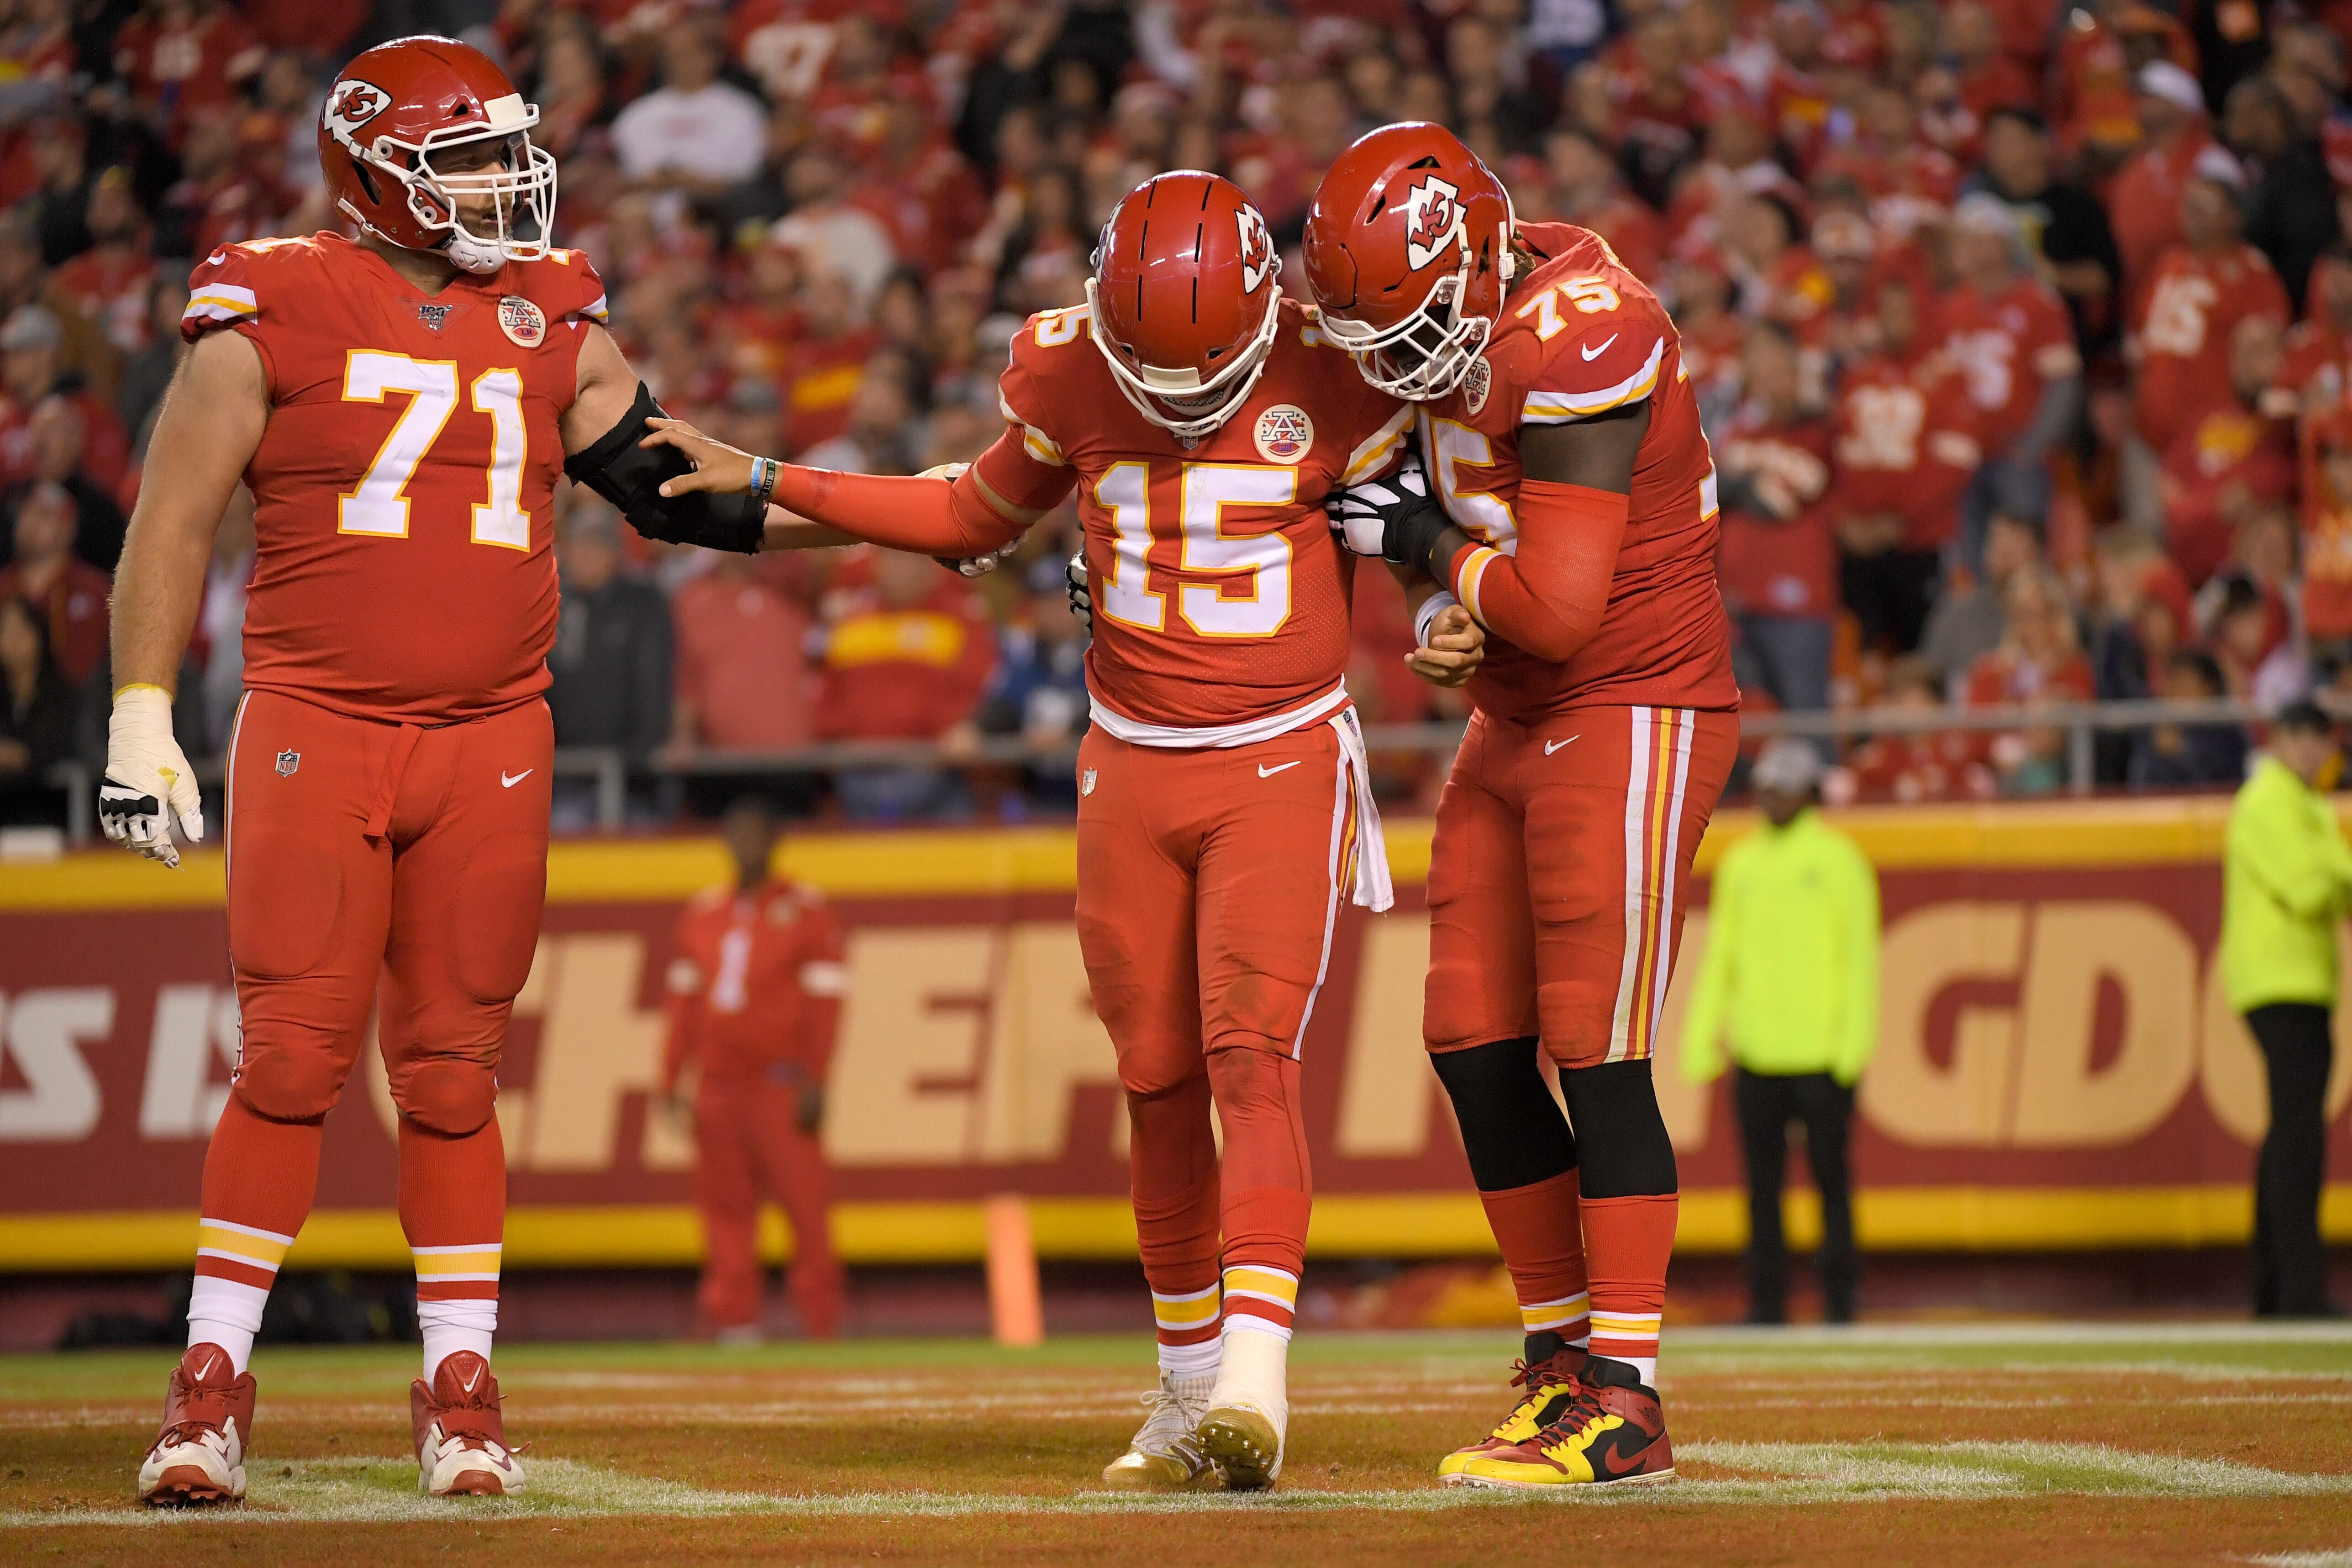 Patrick Mahomes roughed up, held to scoring low as Colts hand Chiefs first loss